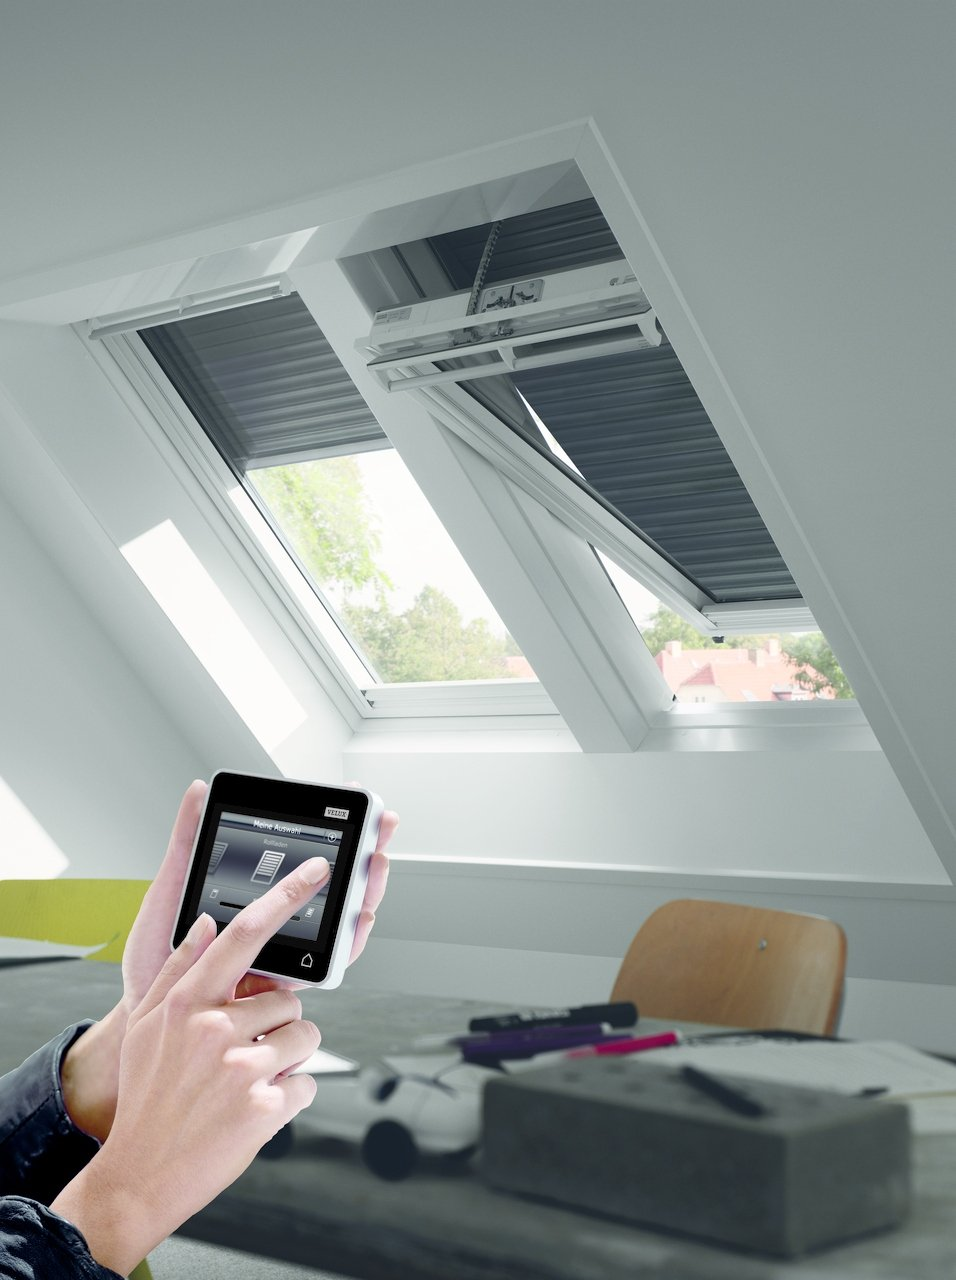 Velux klr 200 perfect velux integra zubehr systems klr for Velux skylight remote control manual